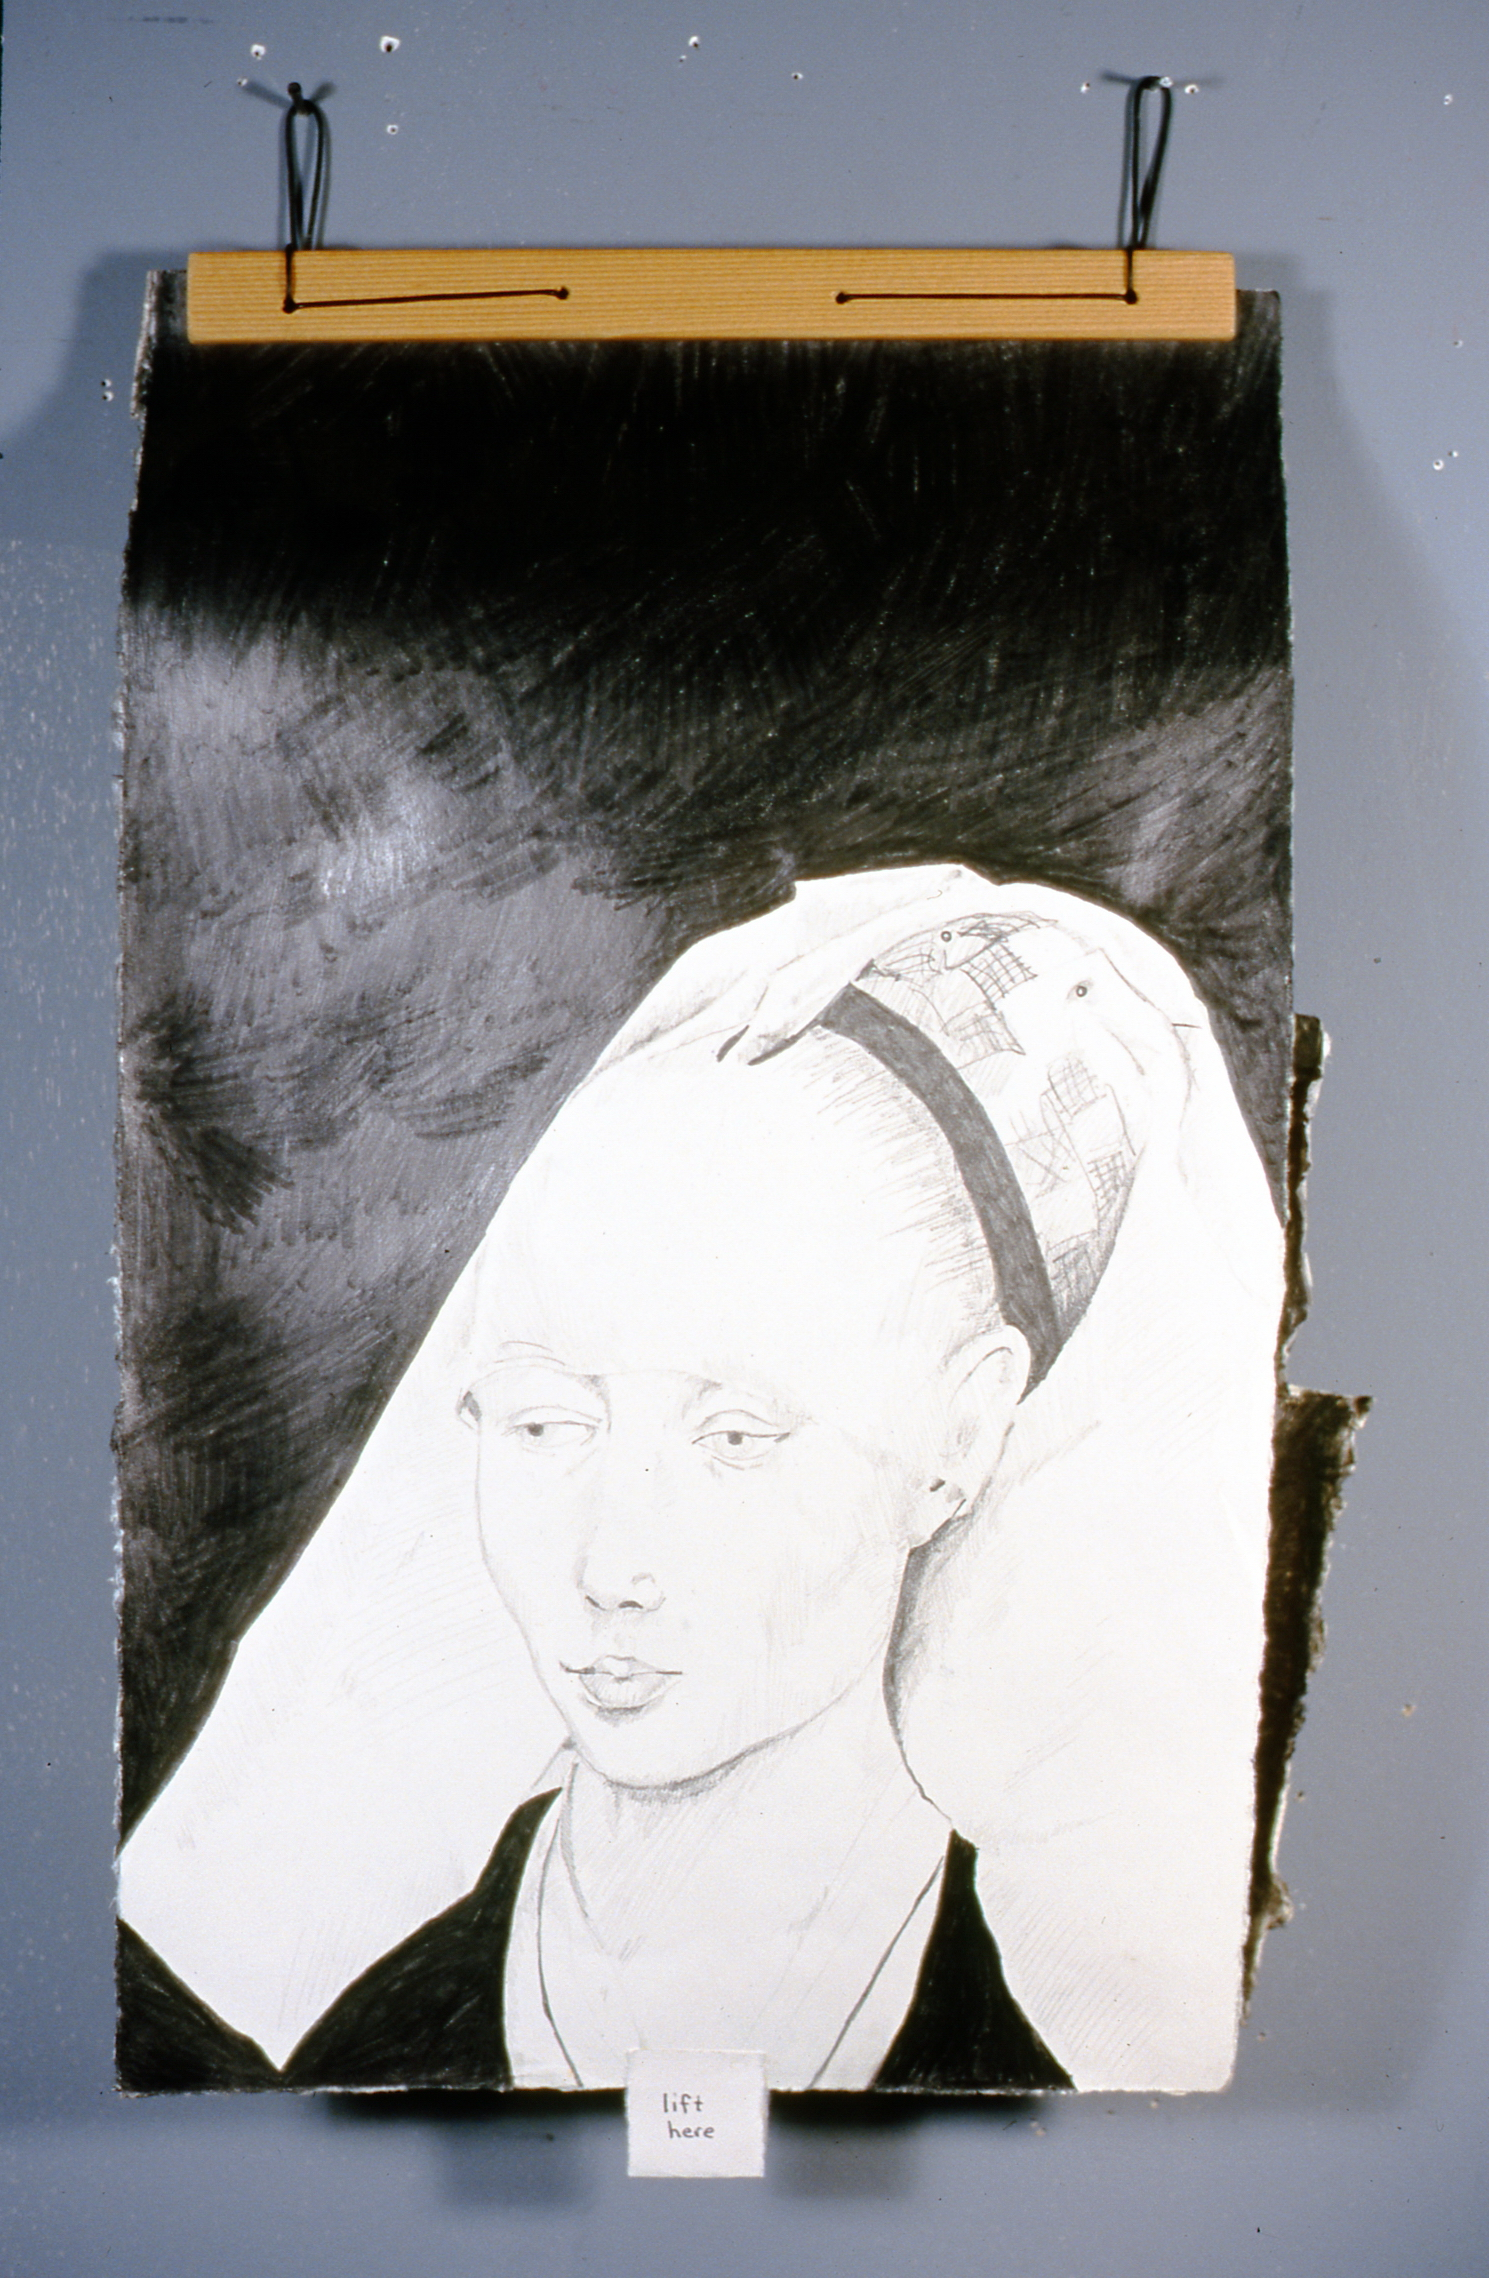 """Woman with Headdress 2 , 2000, Richard Motchman, mixed media/ drawing, 17"""" x 8"""", 2000.02.01, gift of the artist"""